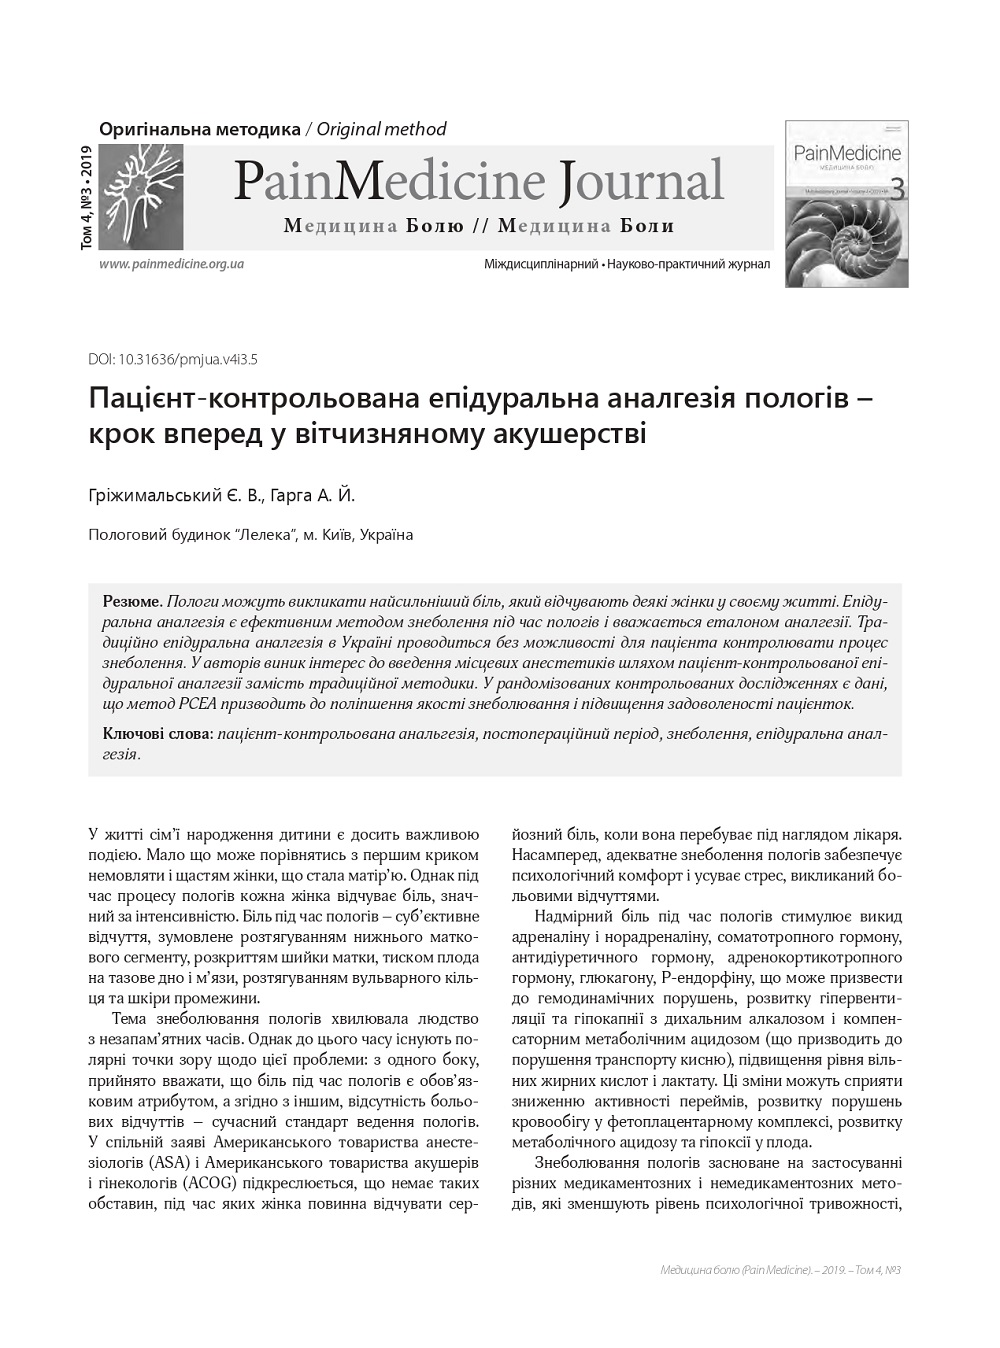 Patient-controlled epidural analgesia for labor – a step forward in Ukrainian obstetrics